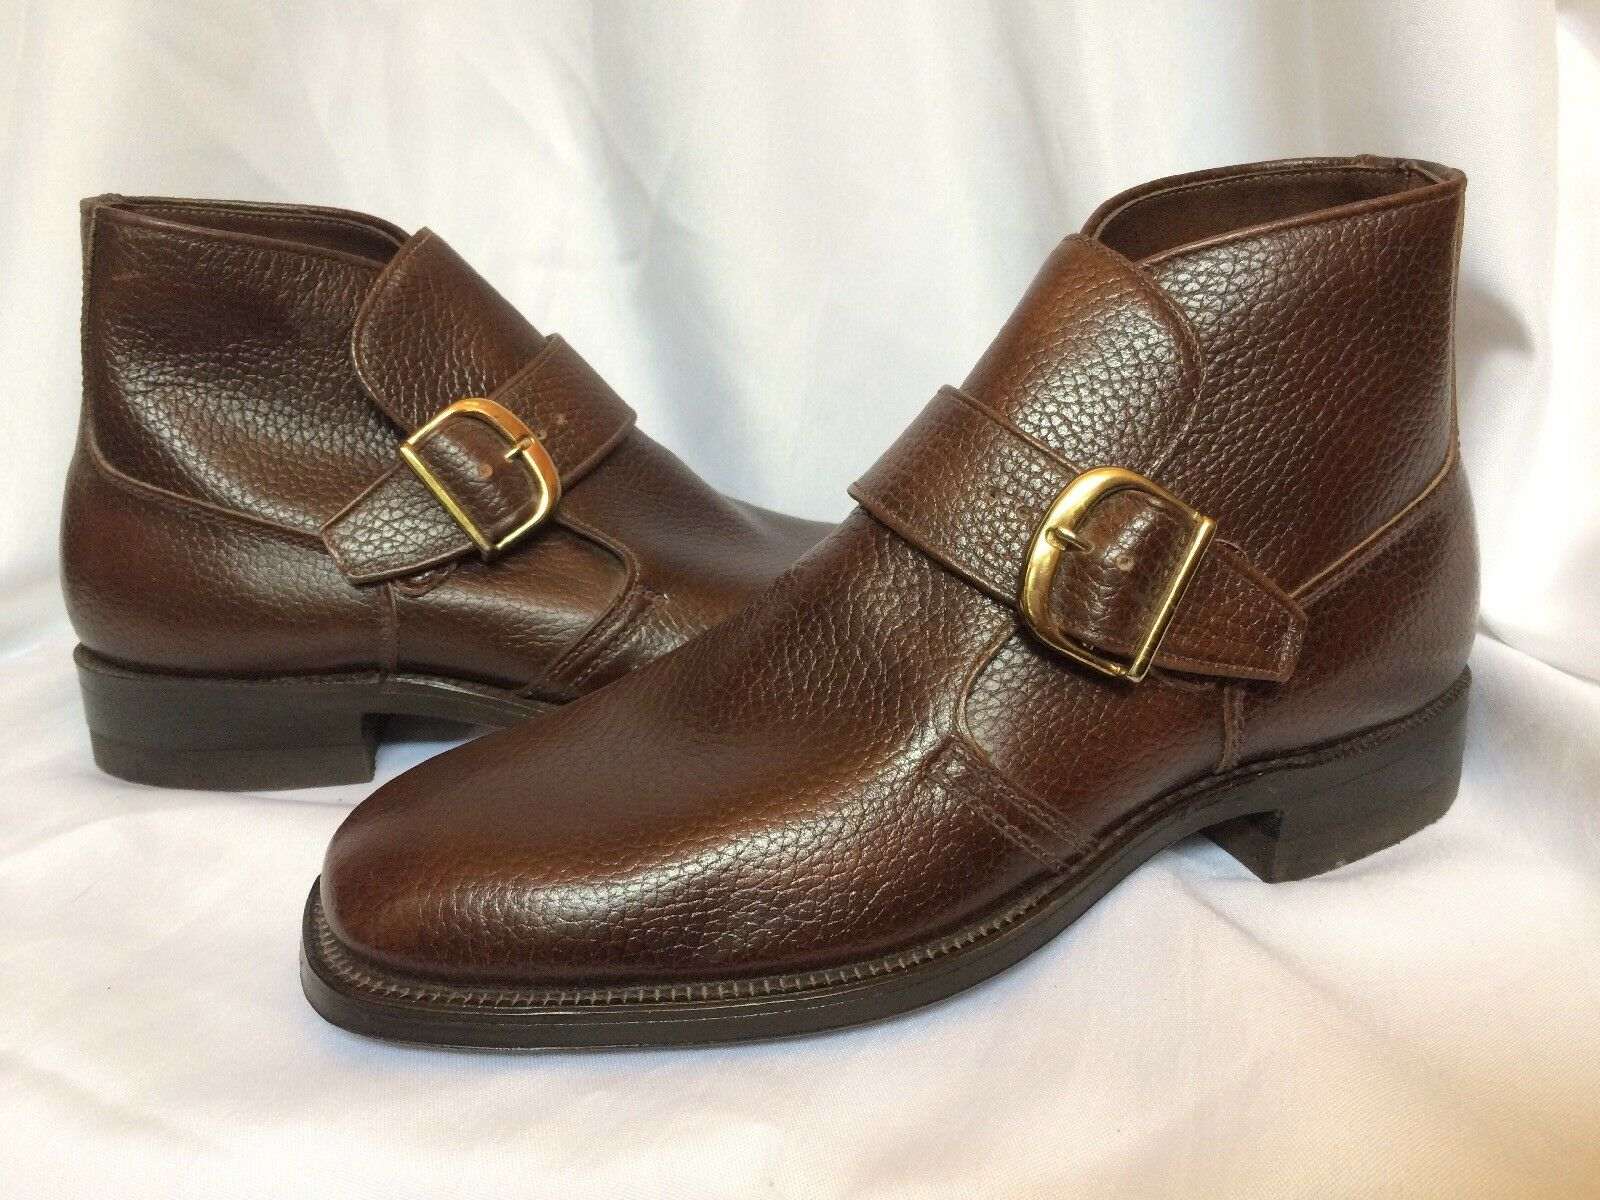 Walk Over Ankle Stiefel Monk Strap Buckle Round Toe USA braun New 7 NOS